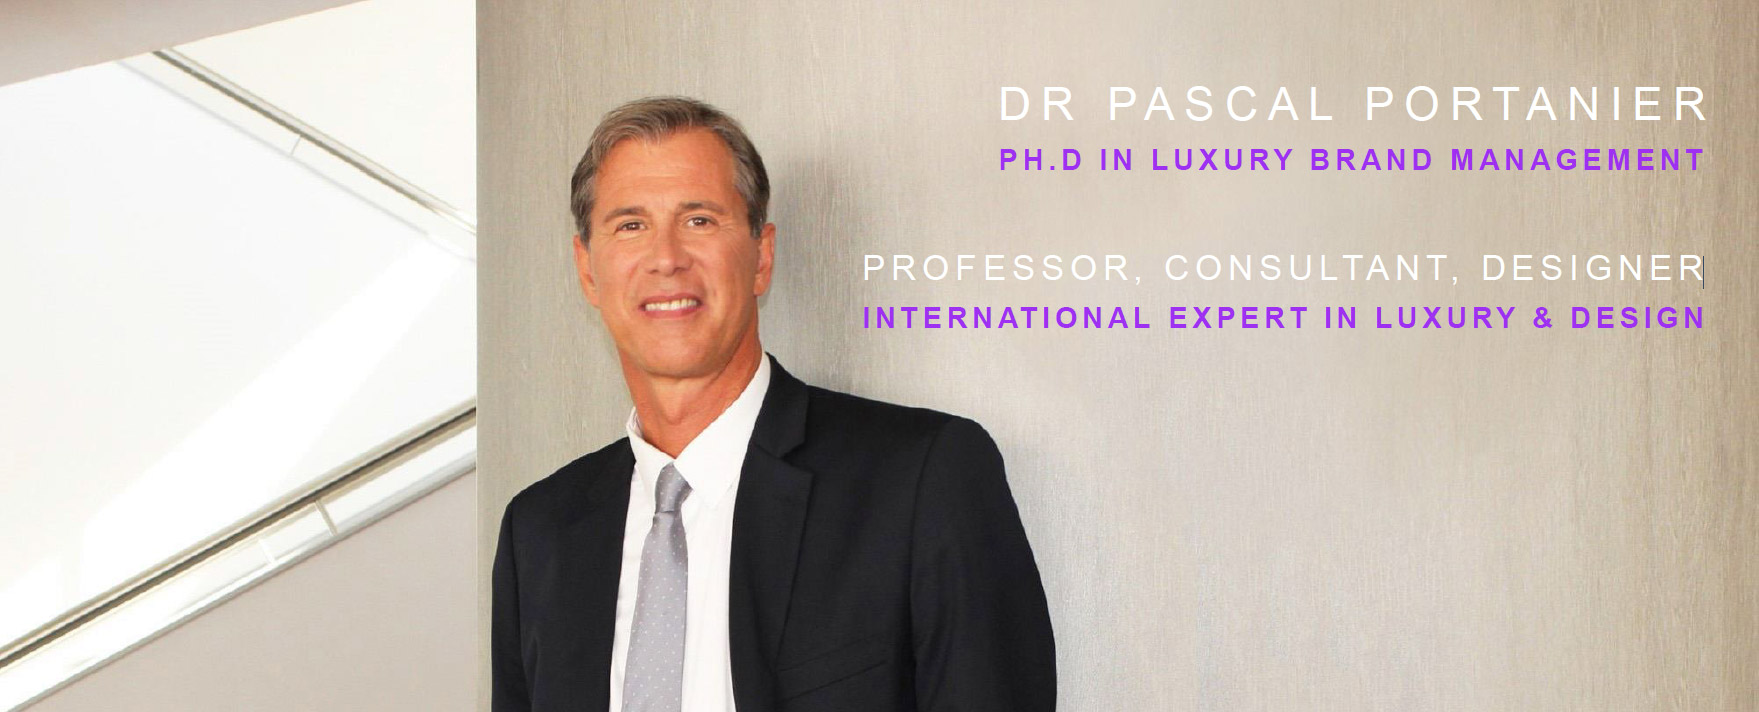 Dr Pascal Portanier Luxury Consulting